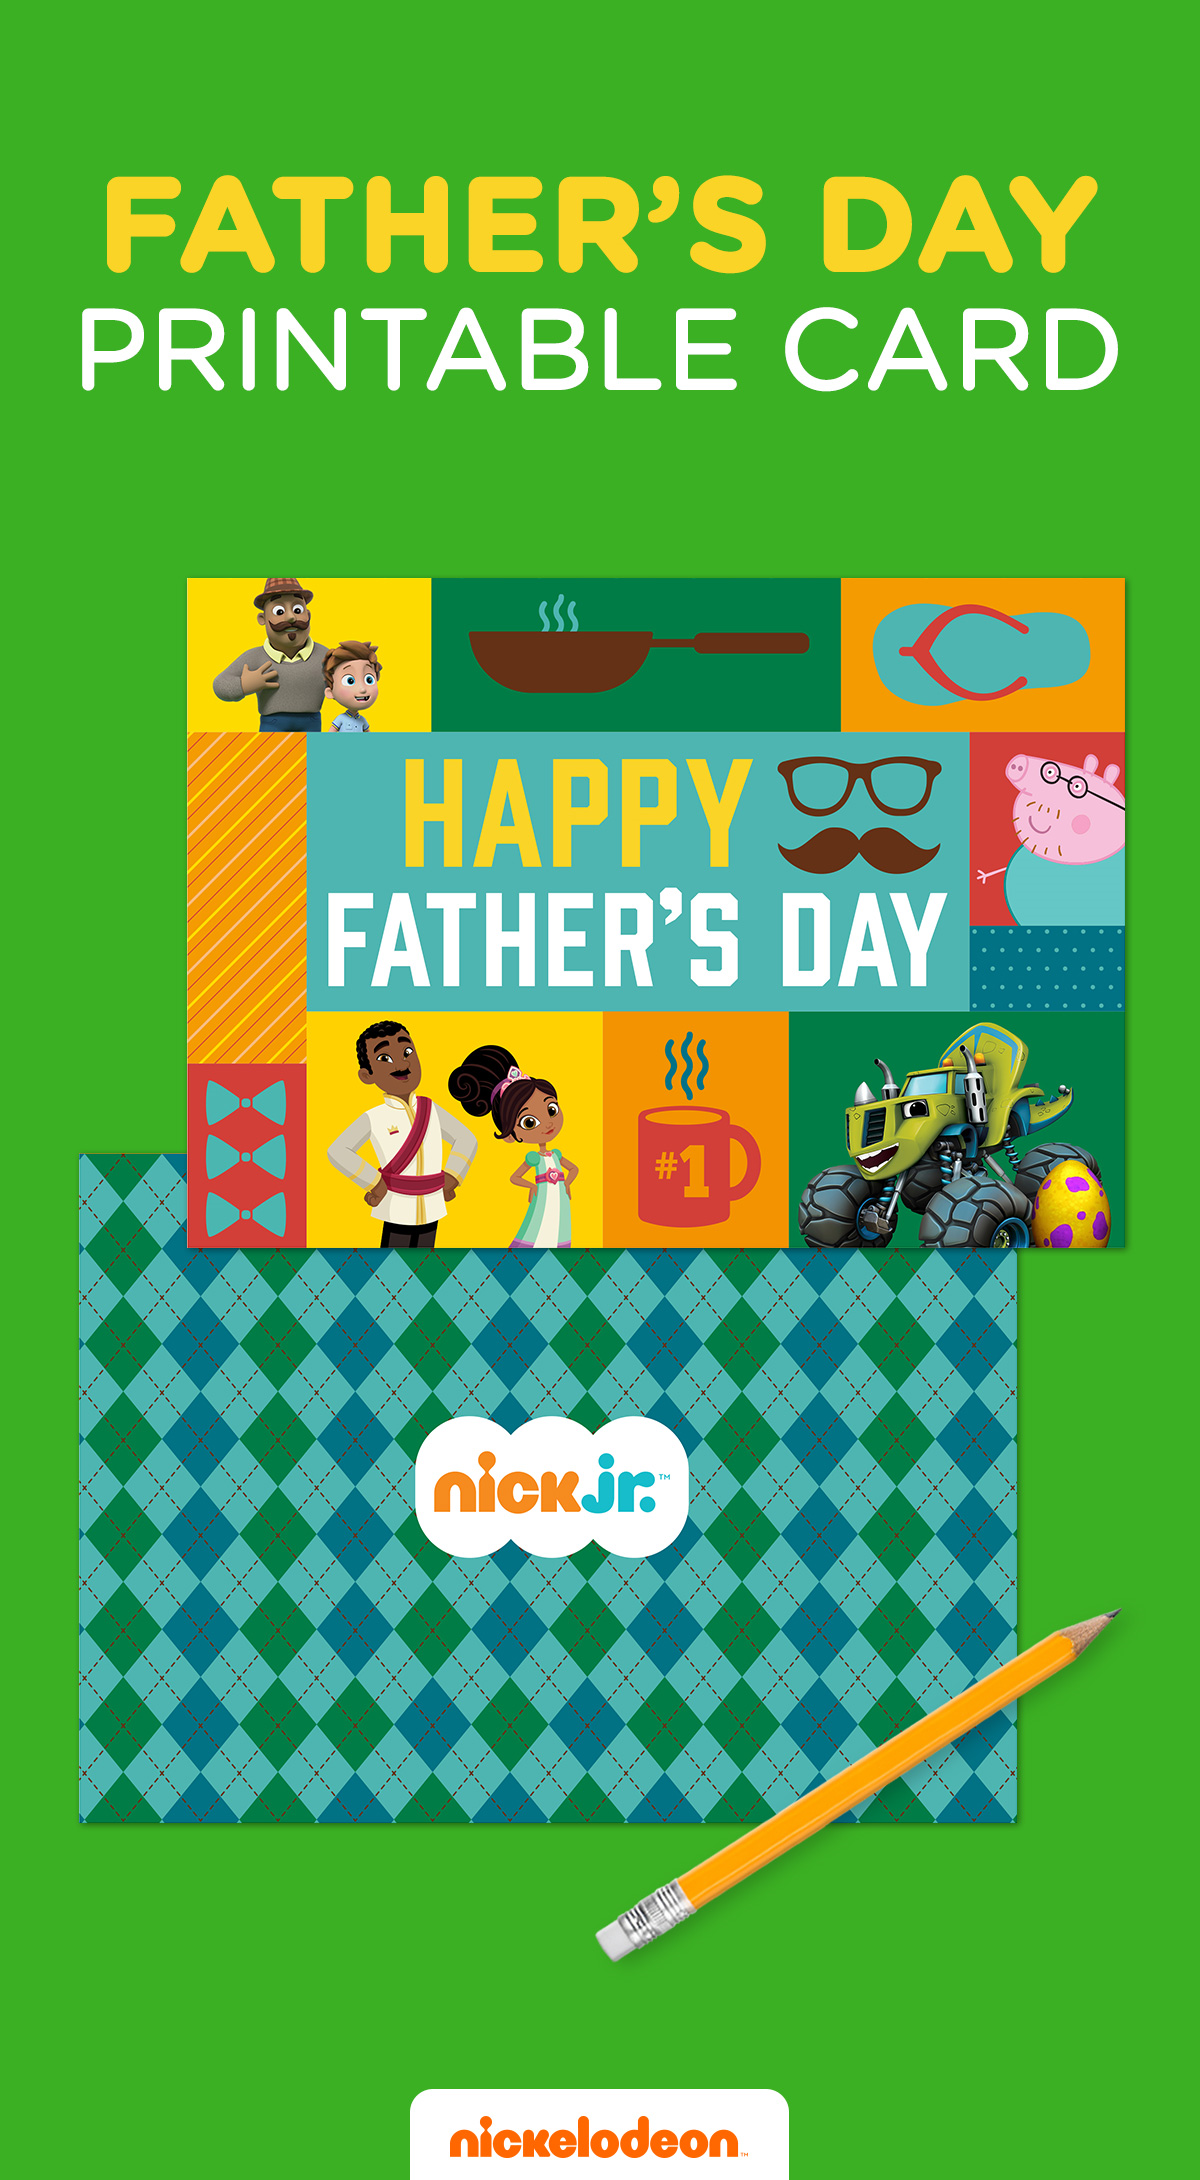 Nick Jr Printable Father S Day Card With Images